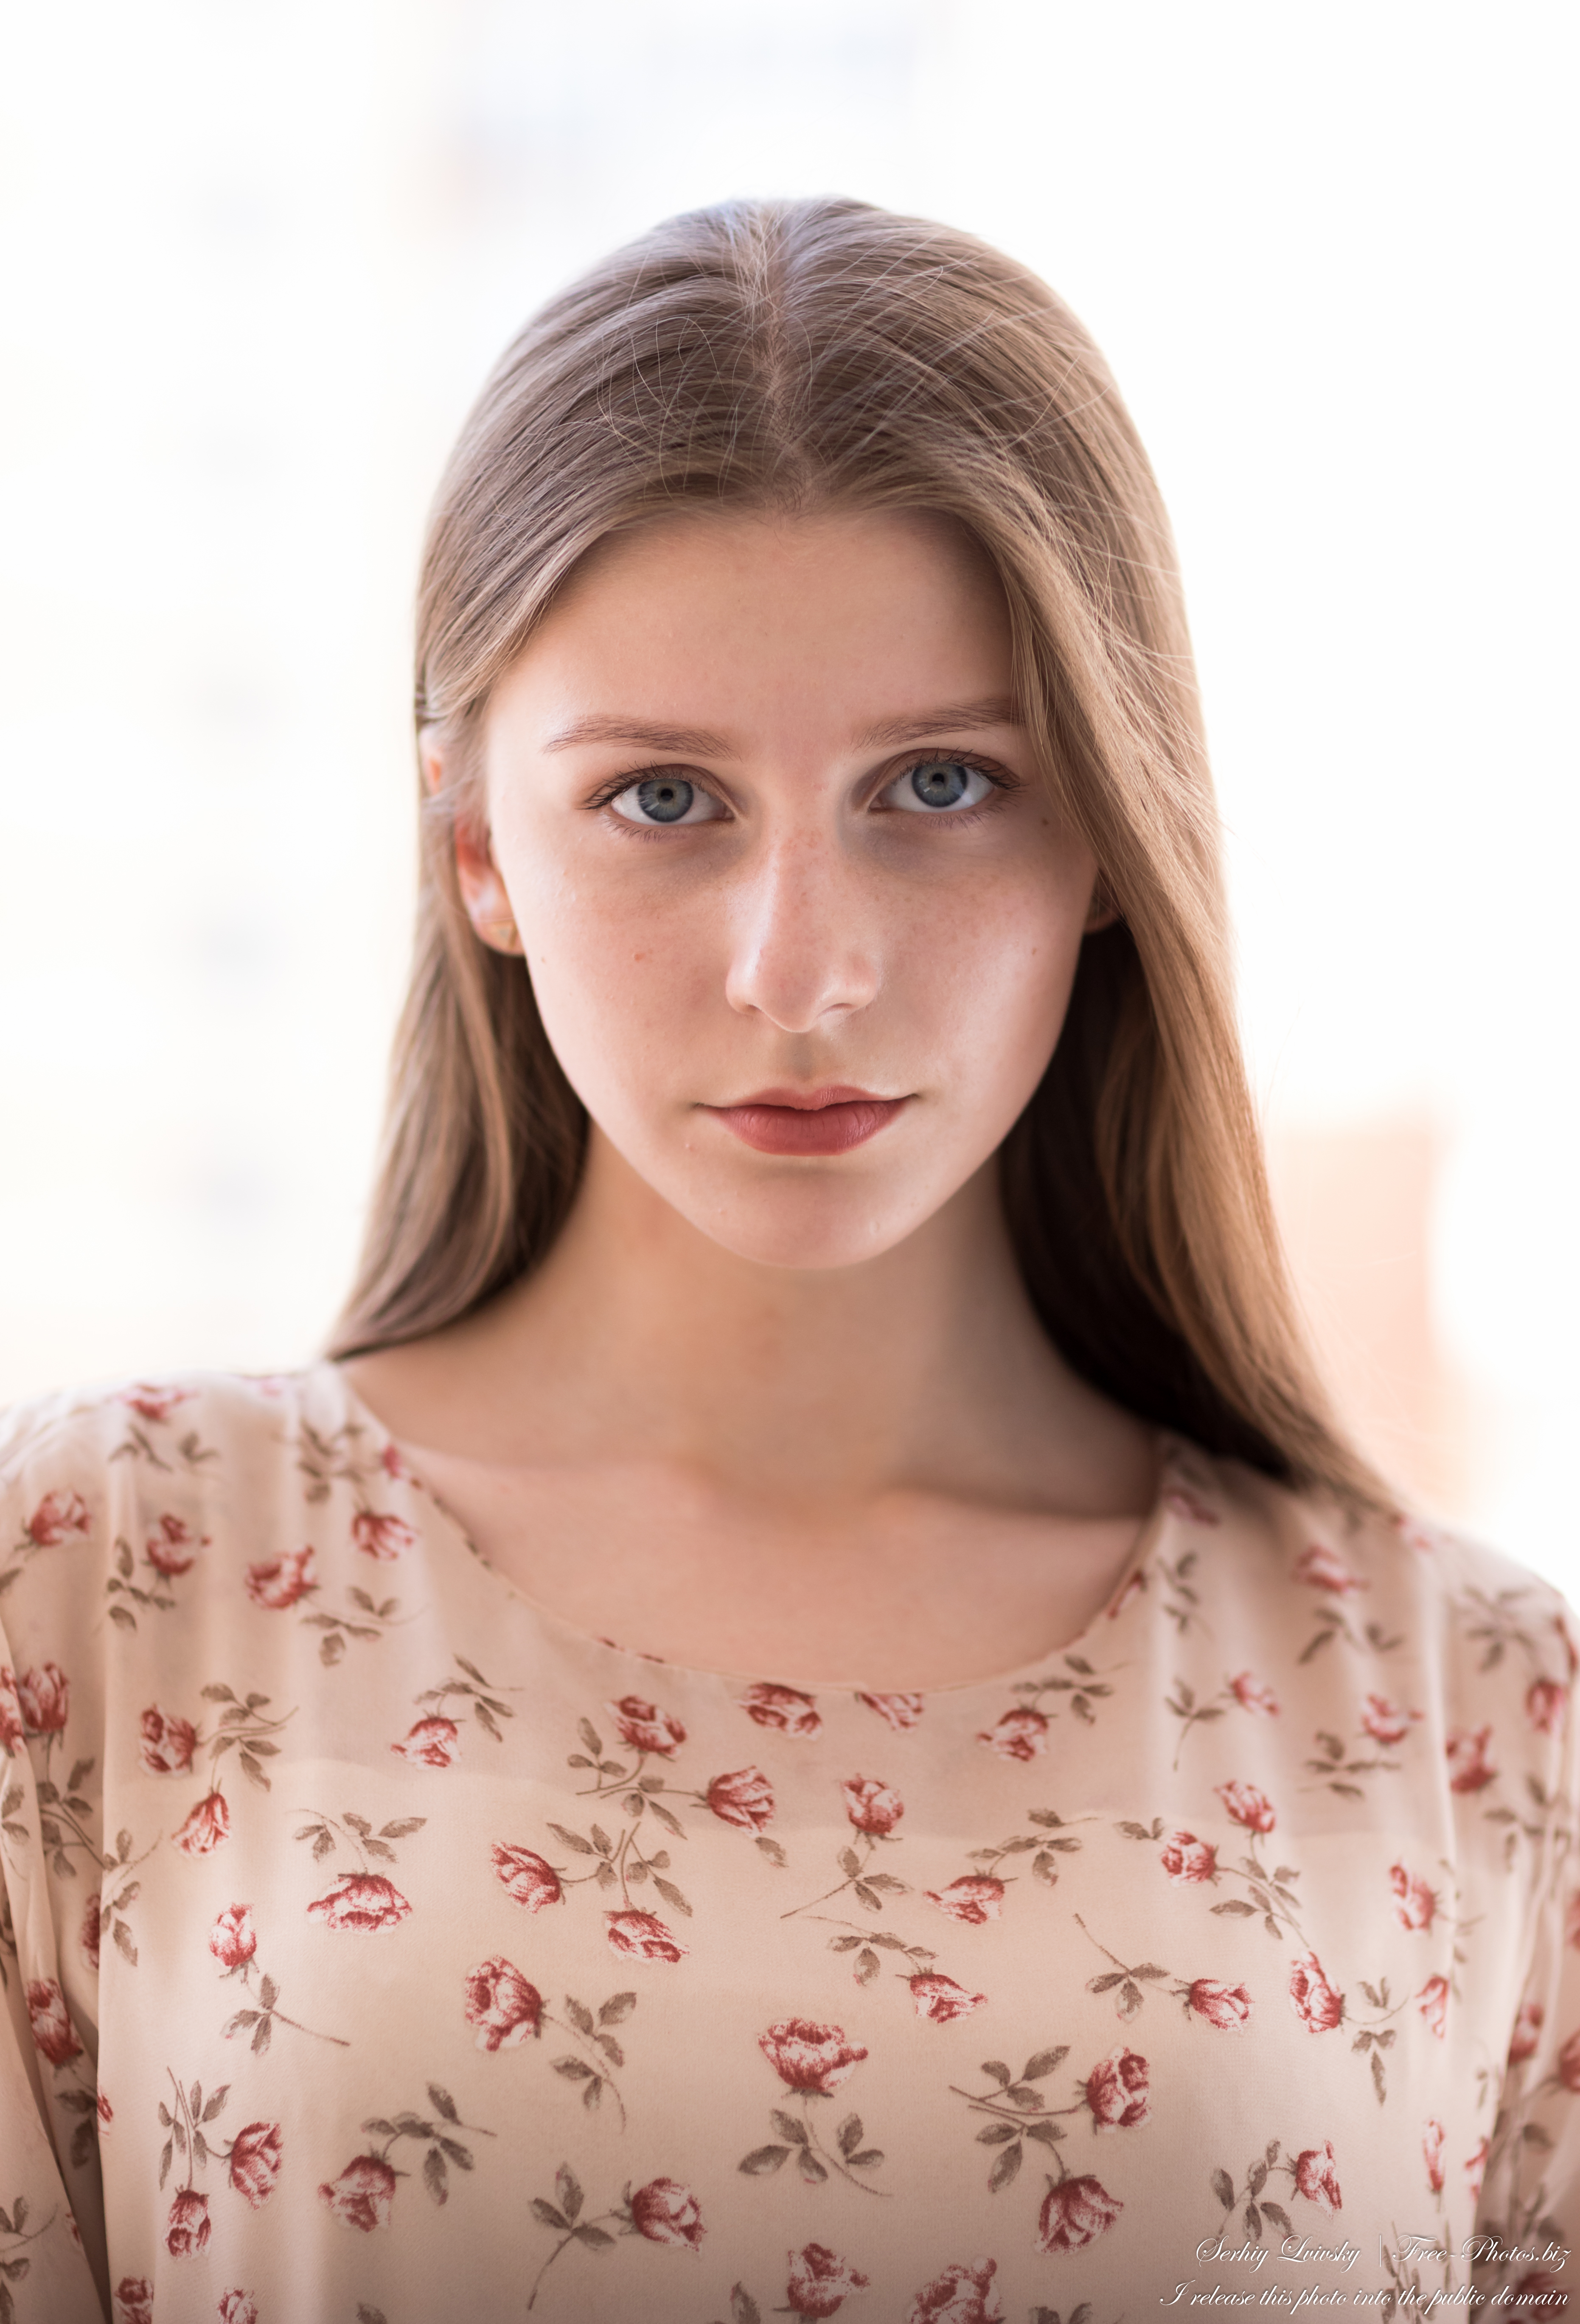 inna_an_18-year-old_natural_fair-haired_girl_photographed_in_july_2020_03